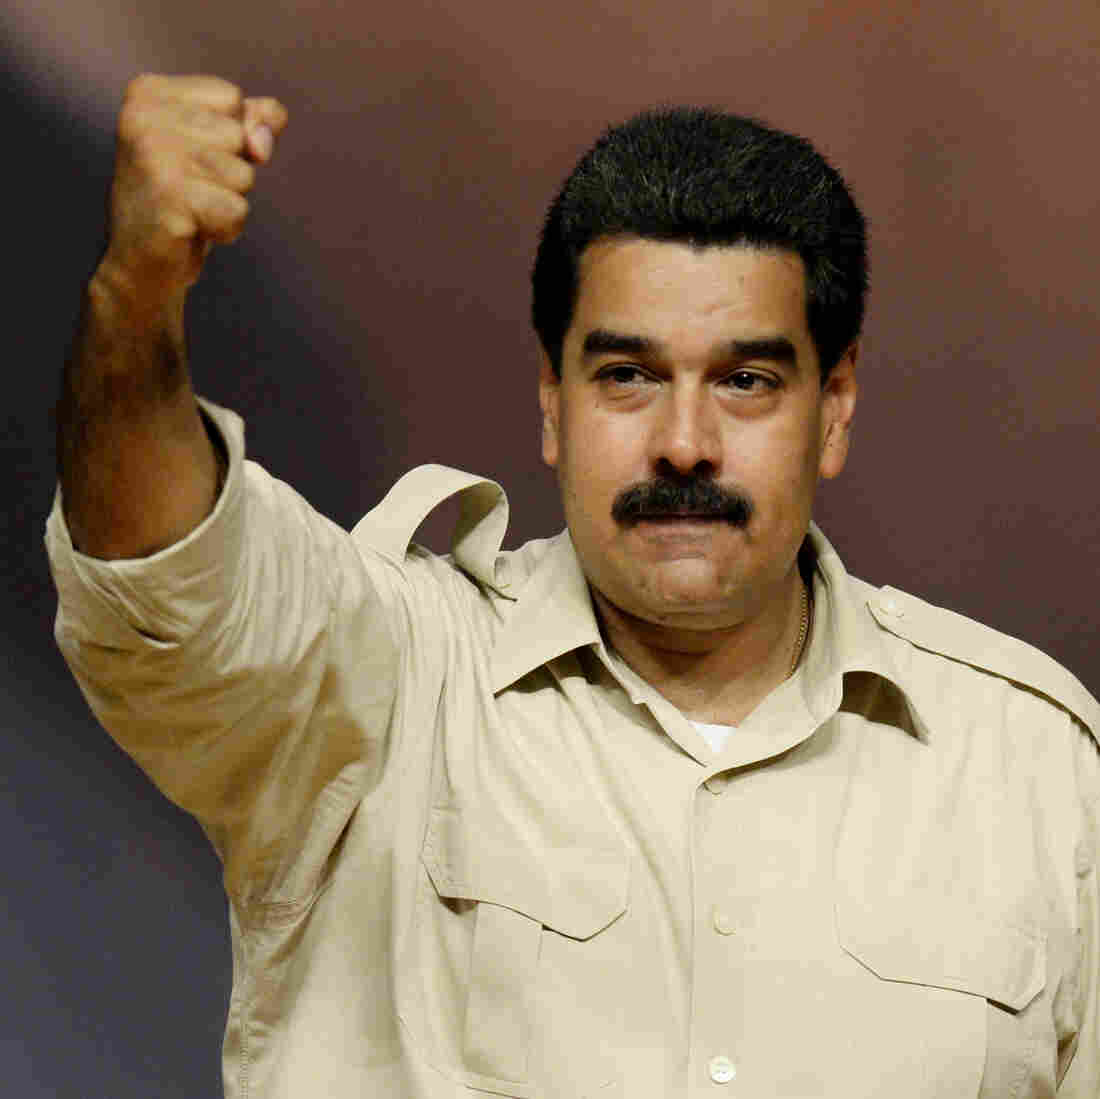 For The Sake Of Happiness, Venezuela's Maduro Moves Up Christmas